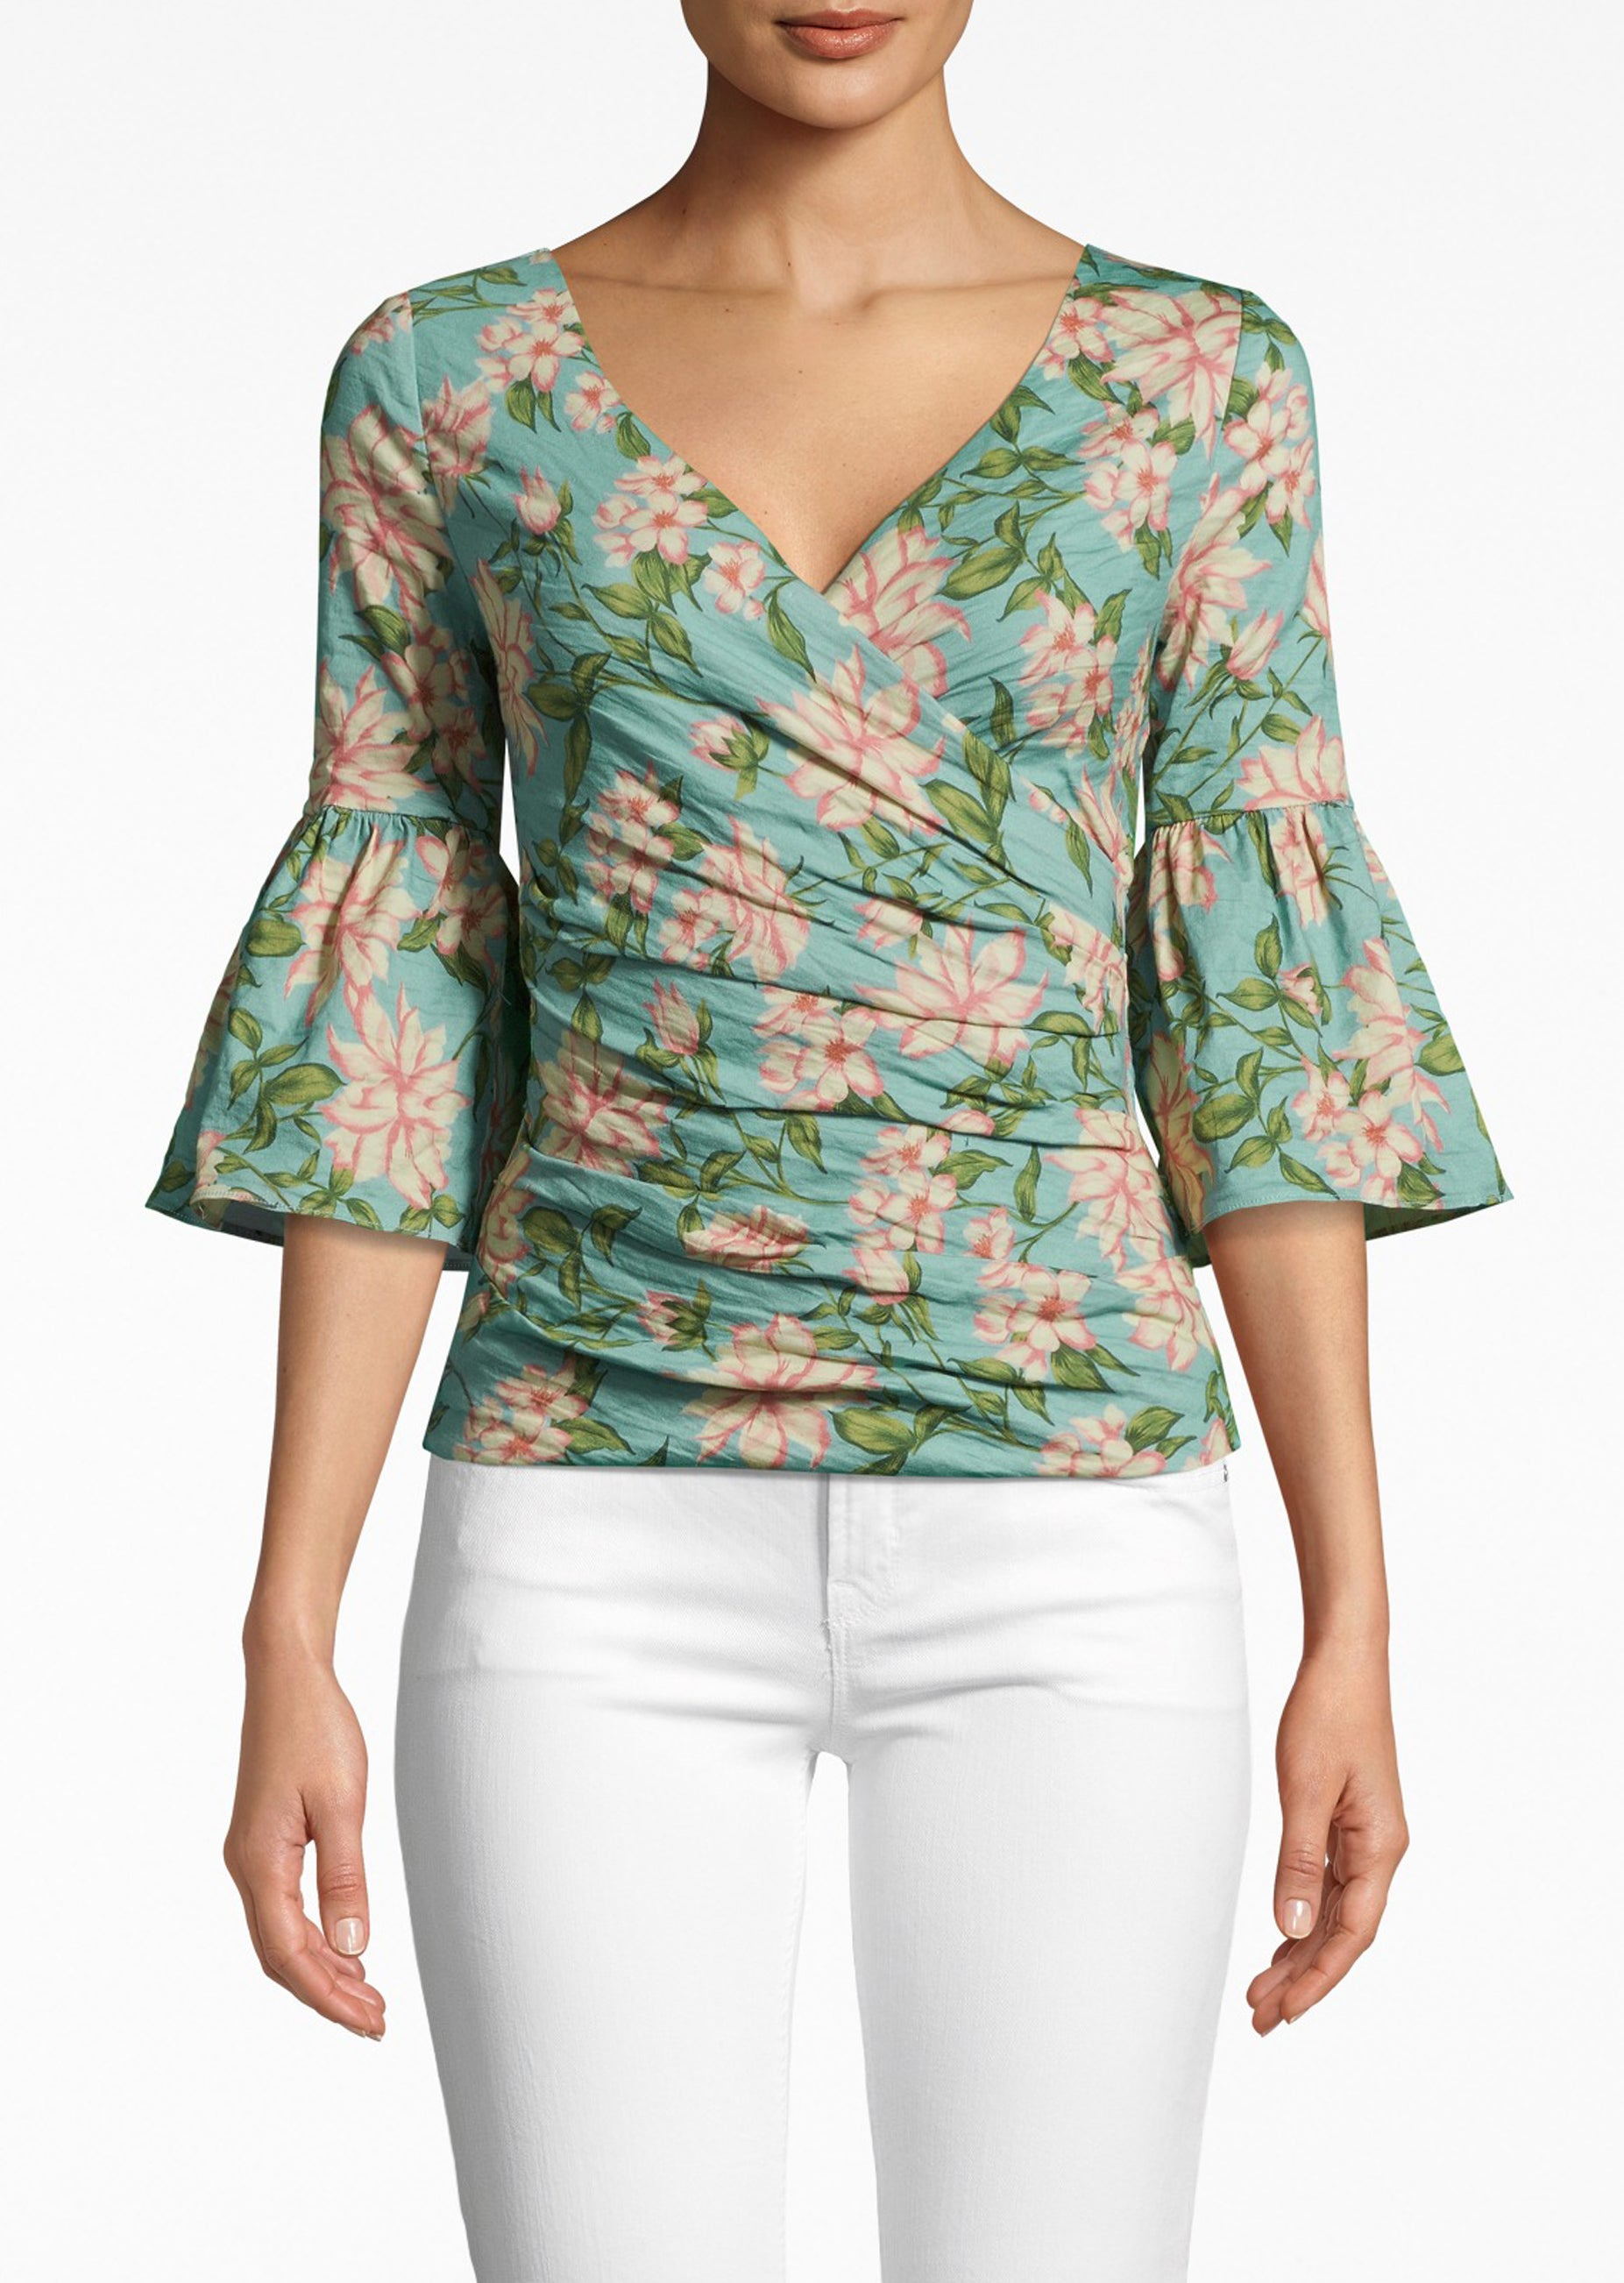 Bell Sleeve Top - Spring Dream